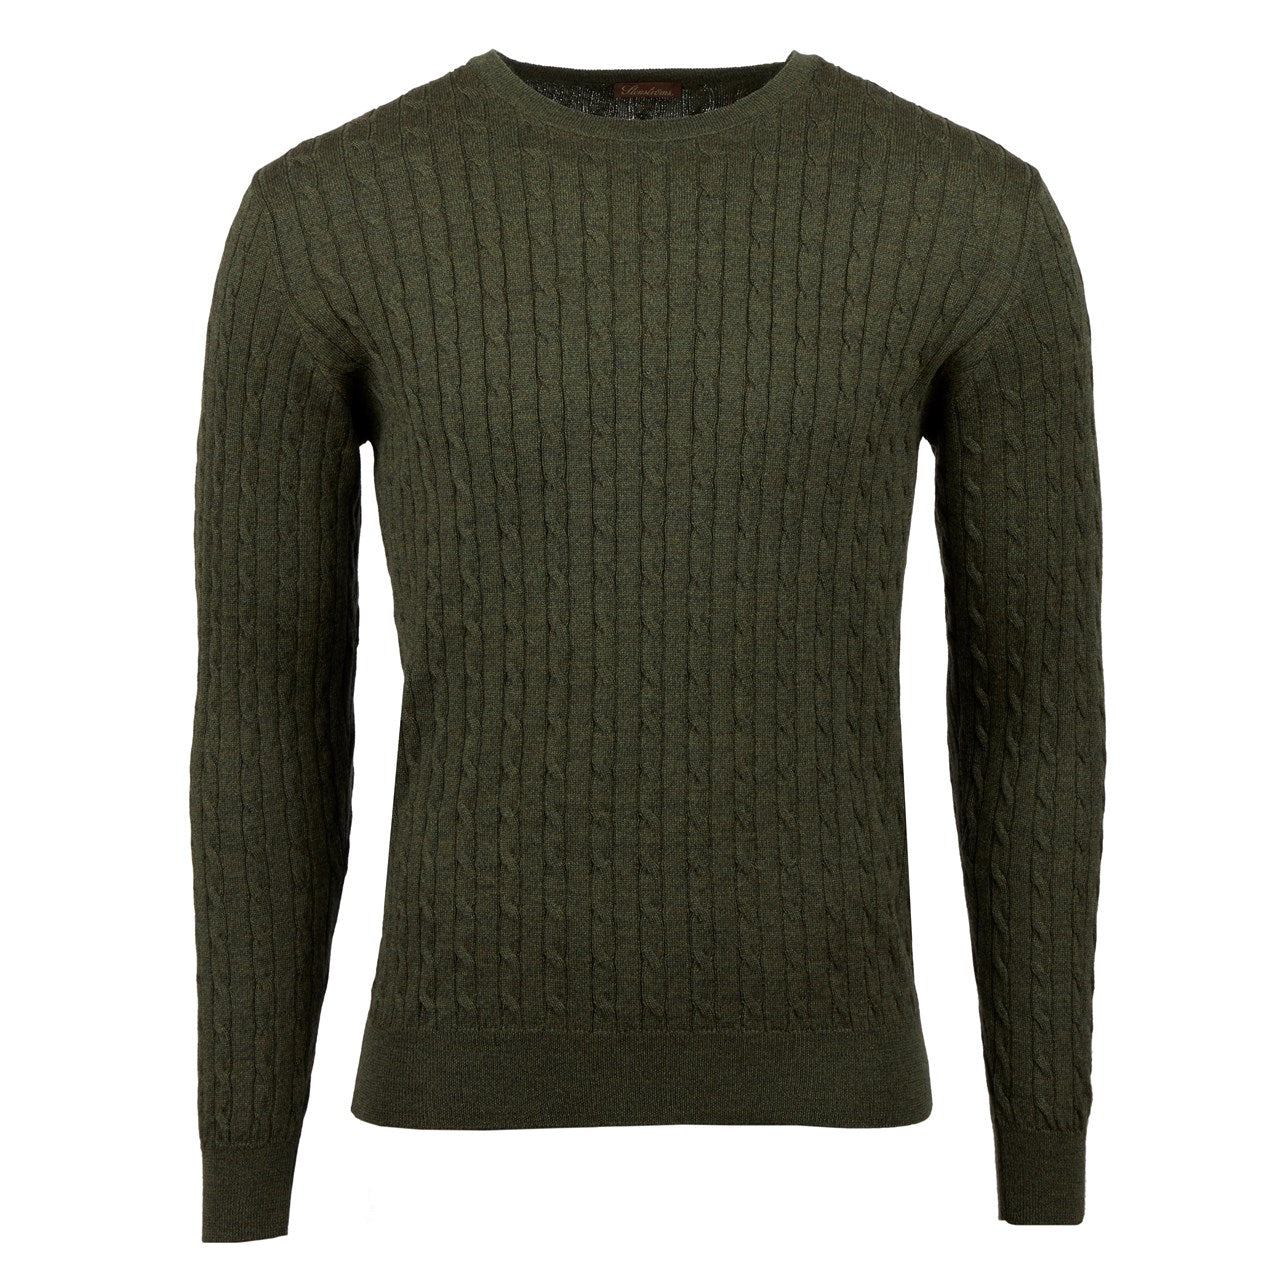 Stenstroms - Green Merino Cable Crew Neck Knitwear 422285